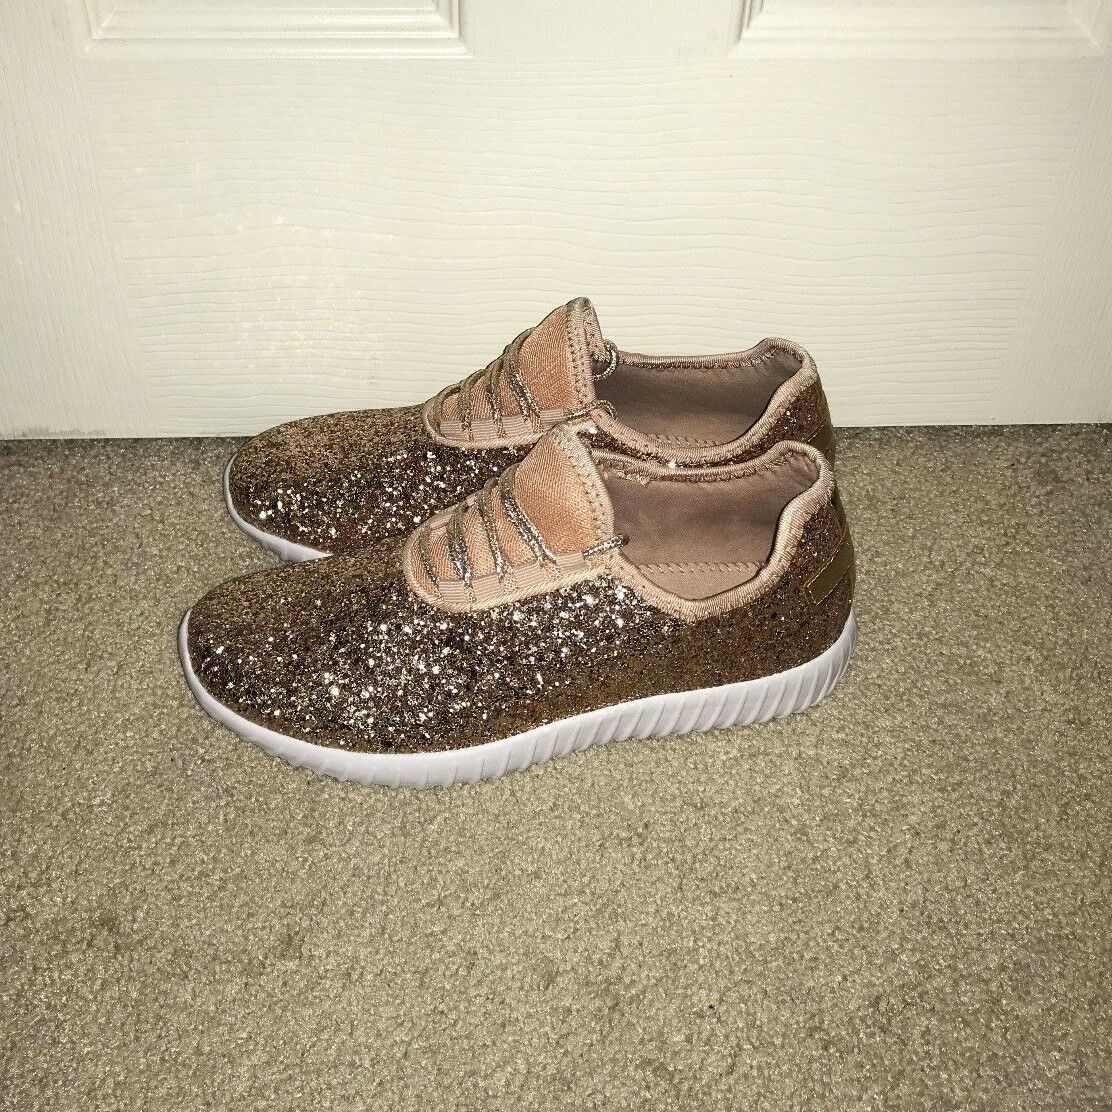 BRAND NEW pink gold Glitter Athletic Sneakers, Size 7.5